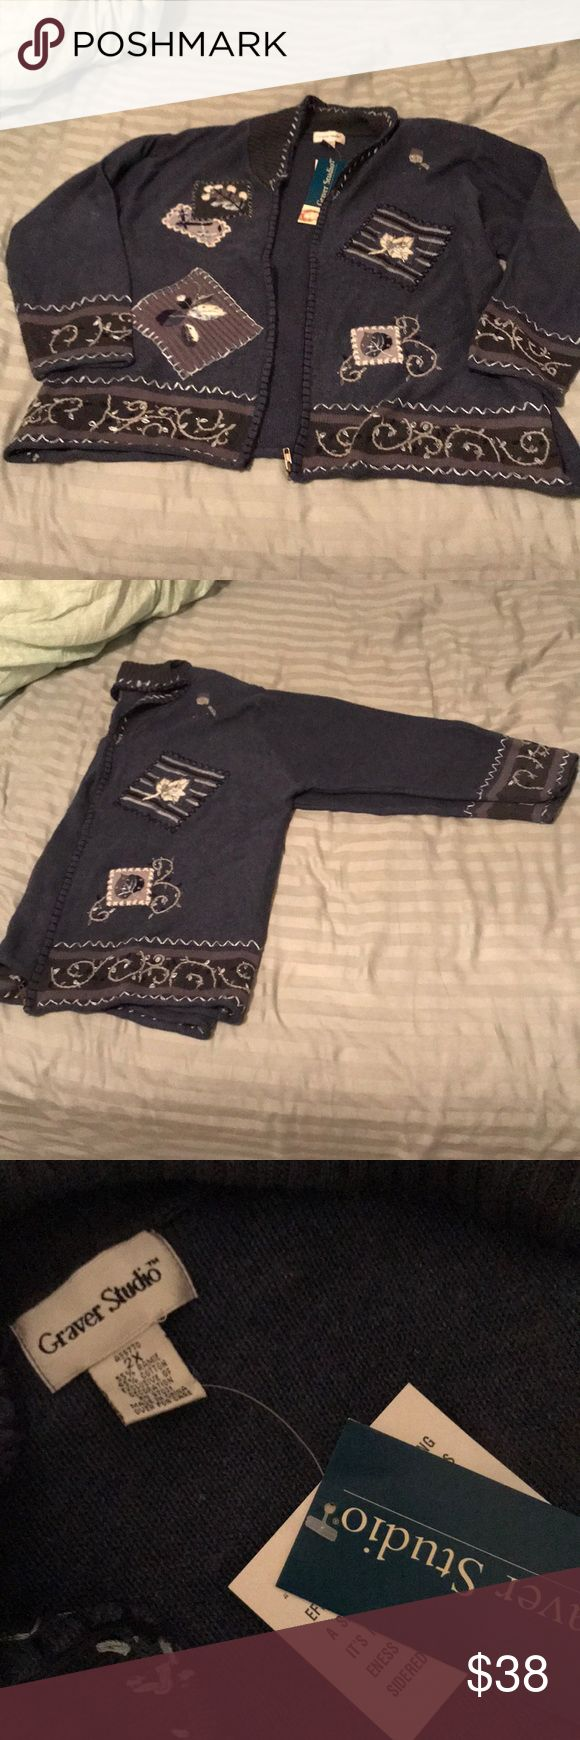 Knit zip up sweater Winter themed zip-up sweater, doesn't have a hood, new with tags!, has shoulder pads that are removable by Velcro, a QVC exclusive!, price is negotiable, in amazing condition Susan Graver Sweaters Cardigans